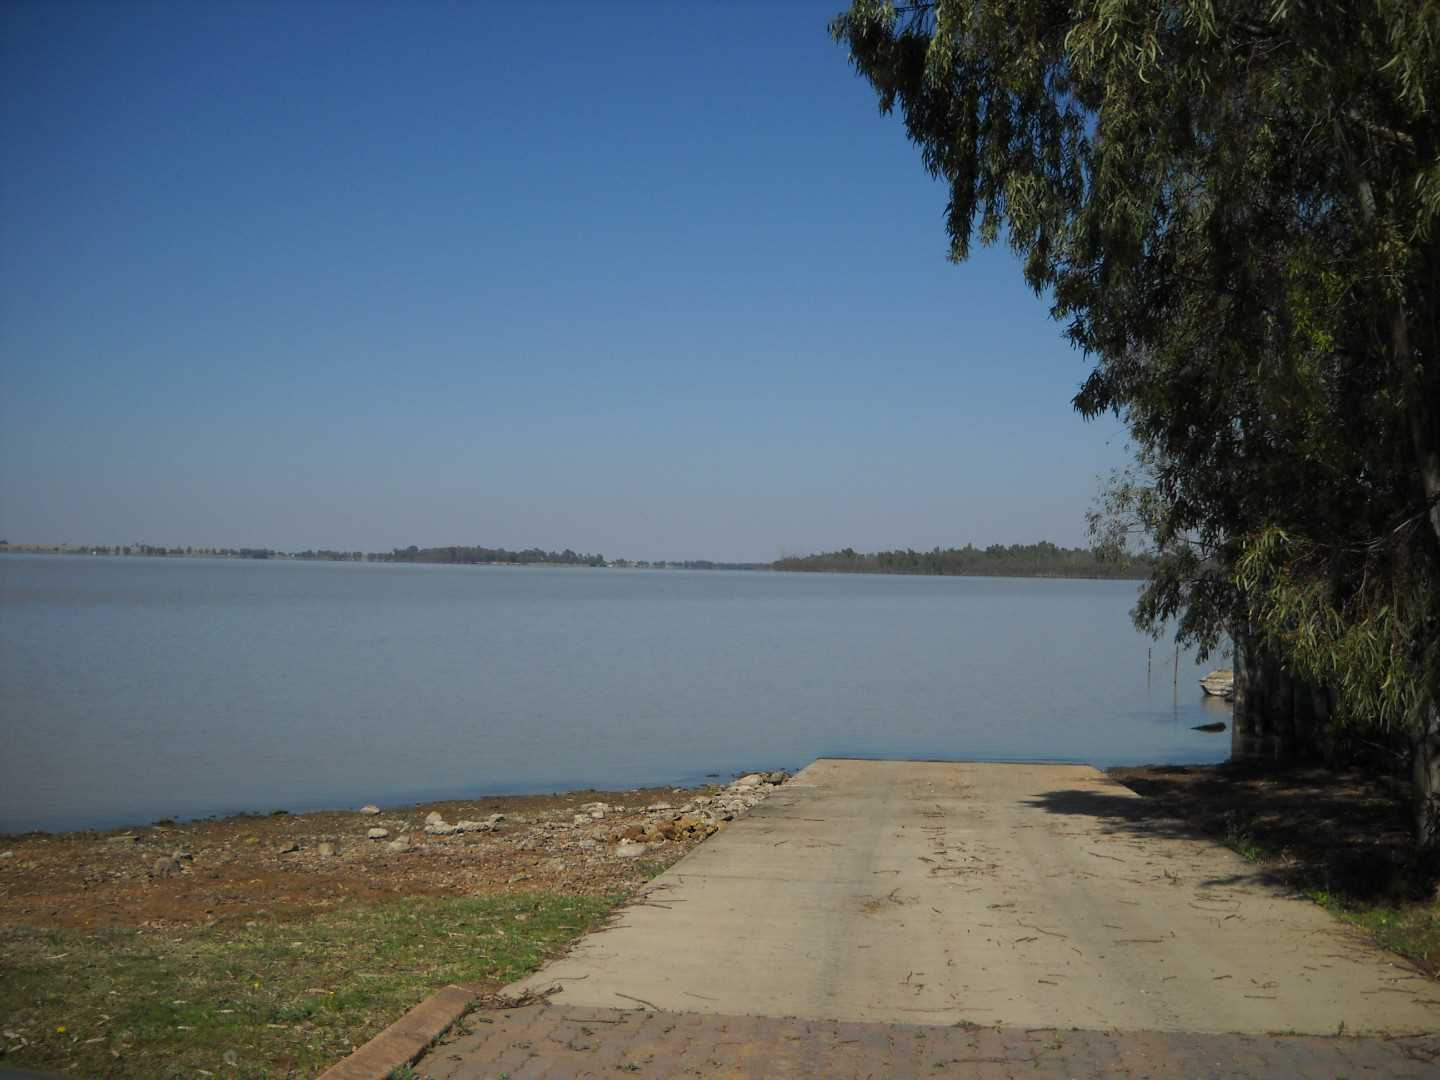 Slipway to launch into the Vaal Dam